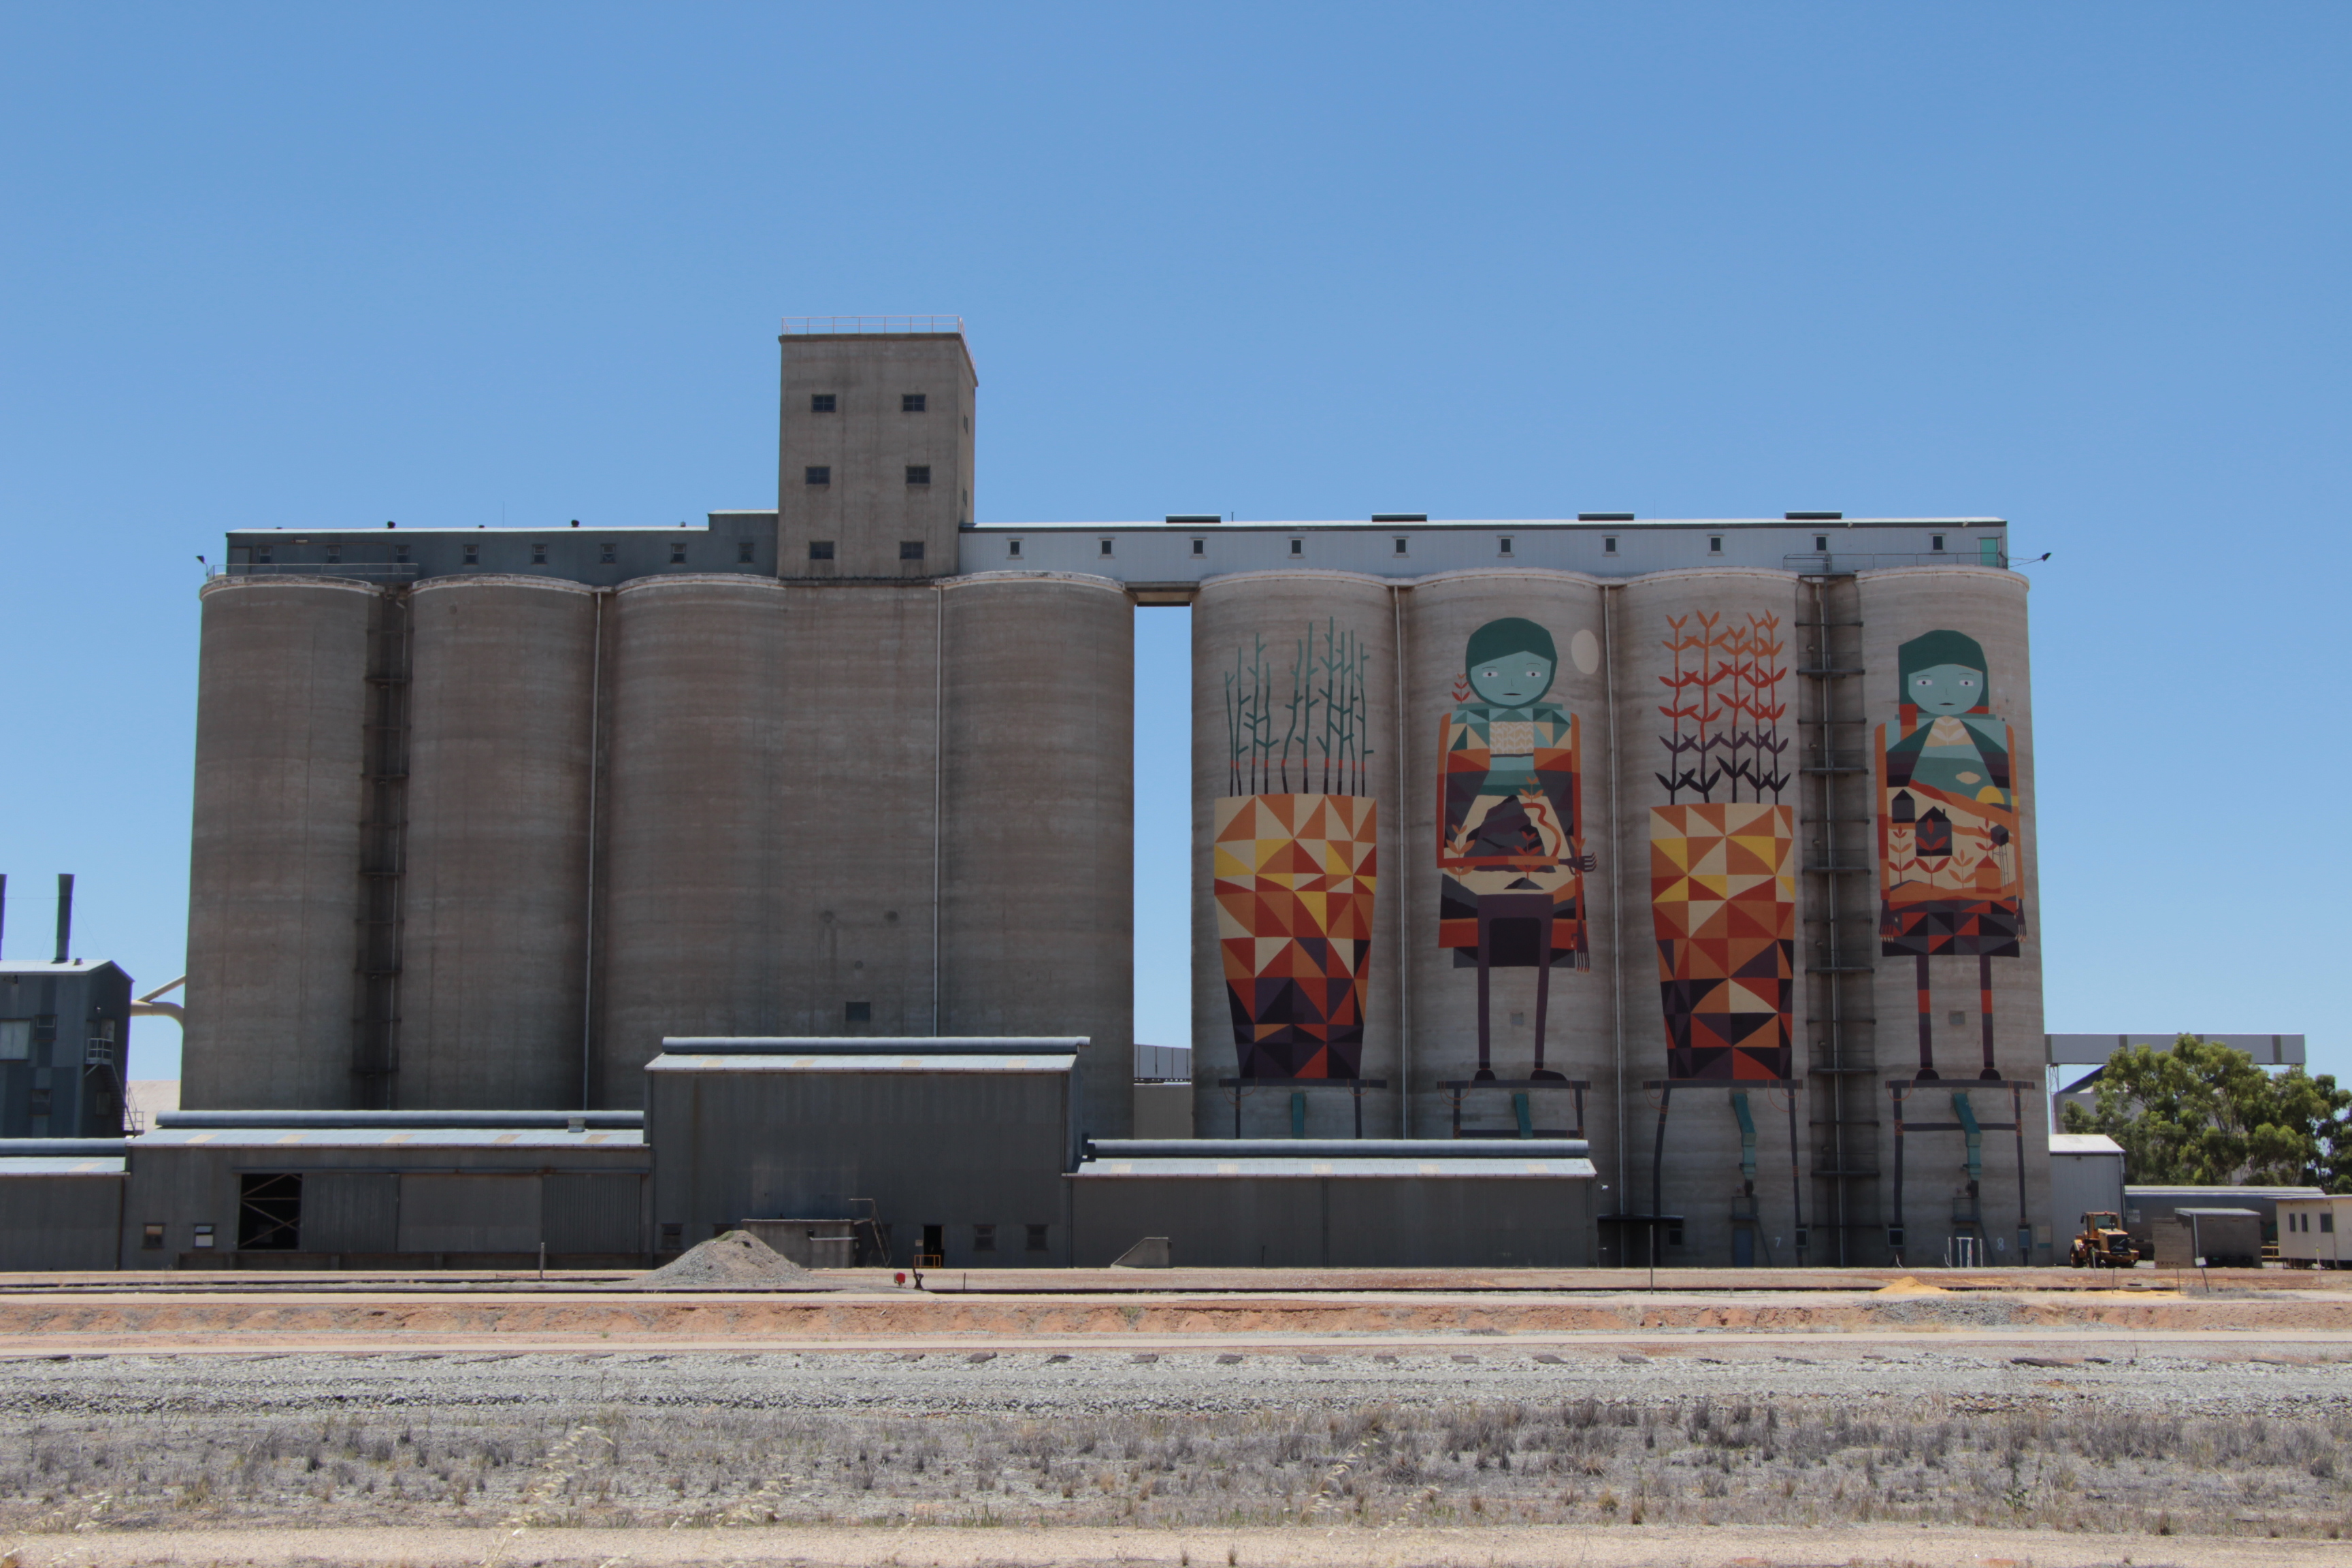 Artwork painted on the silo's on the outskirts of Merredin.